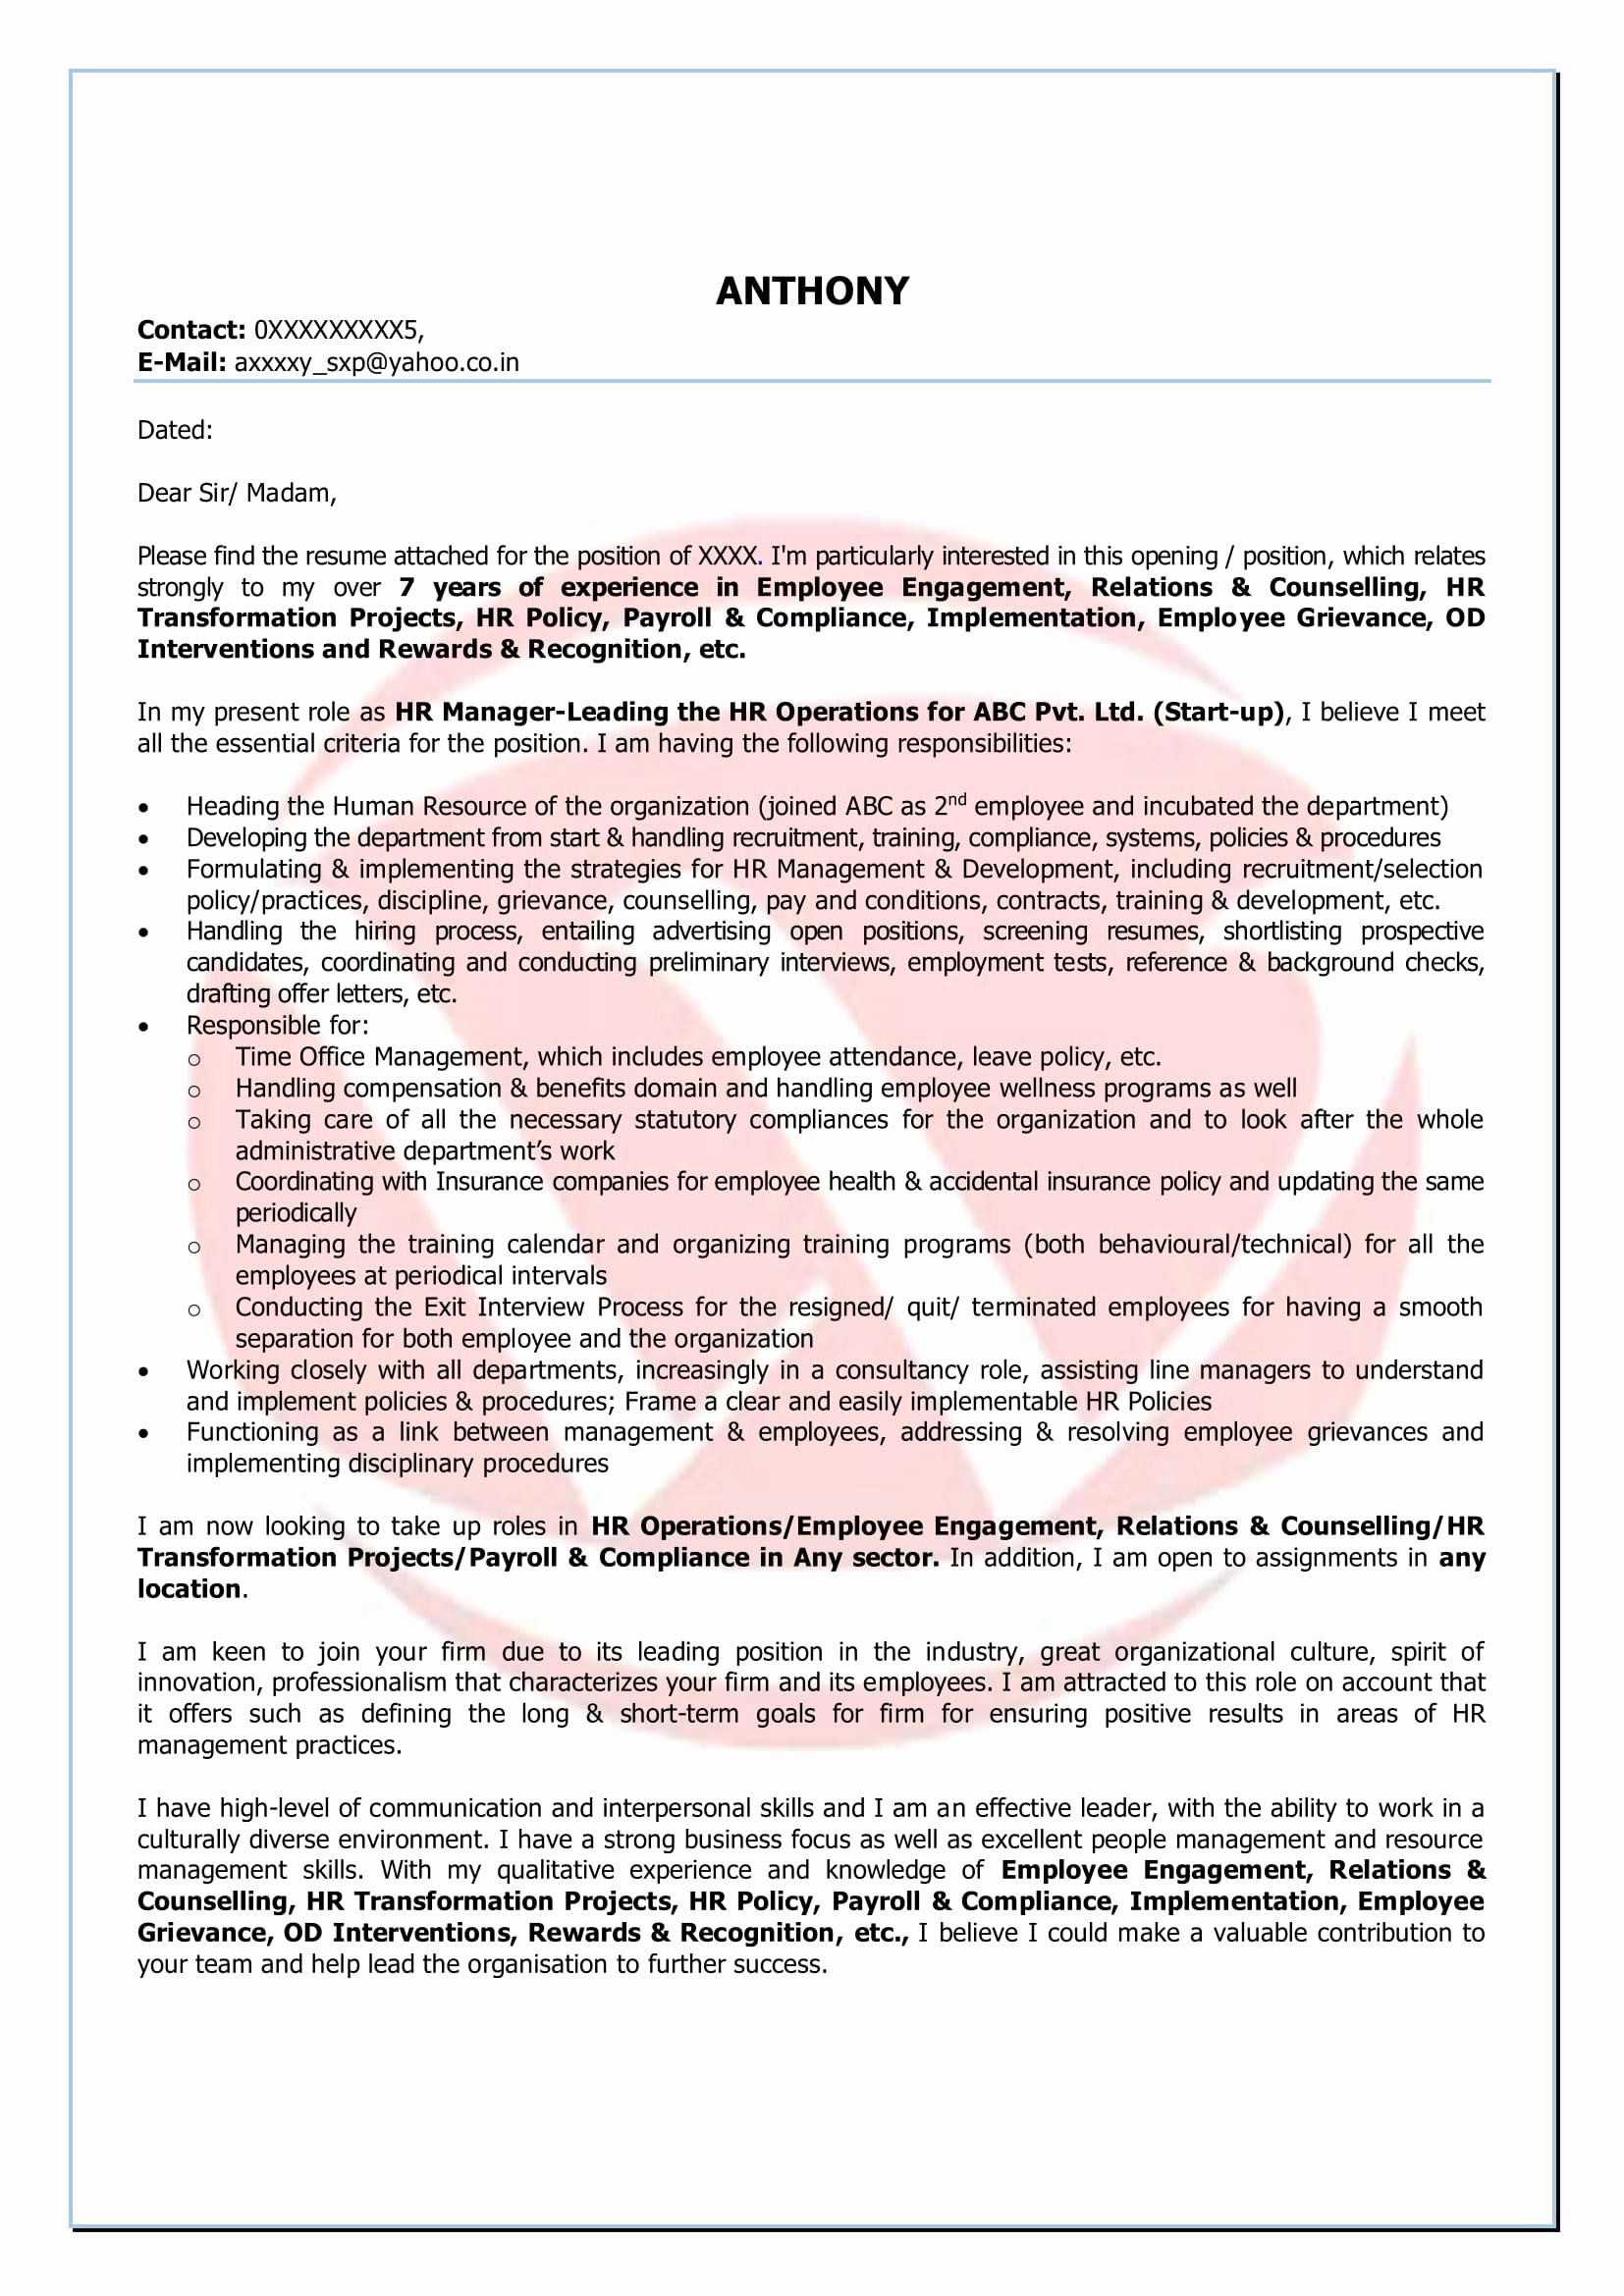 Personal Reference Letter Template Free - Personal Letter Re Mendation Templates Beautiful Awesome